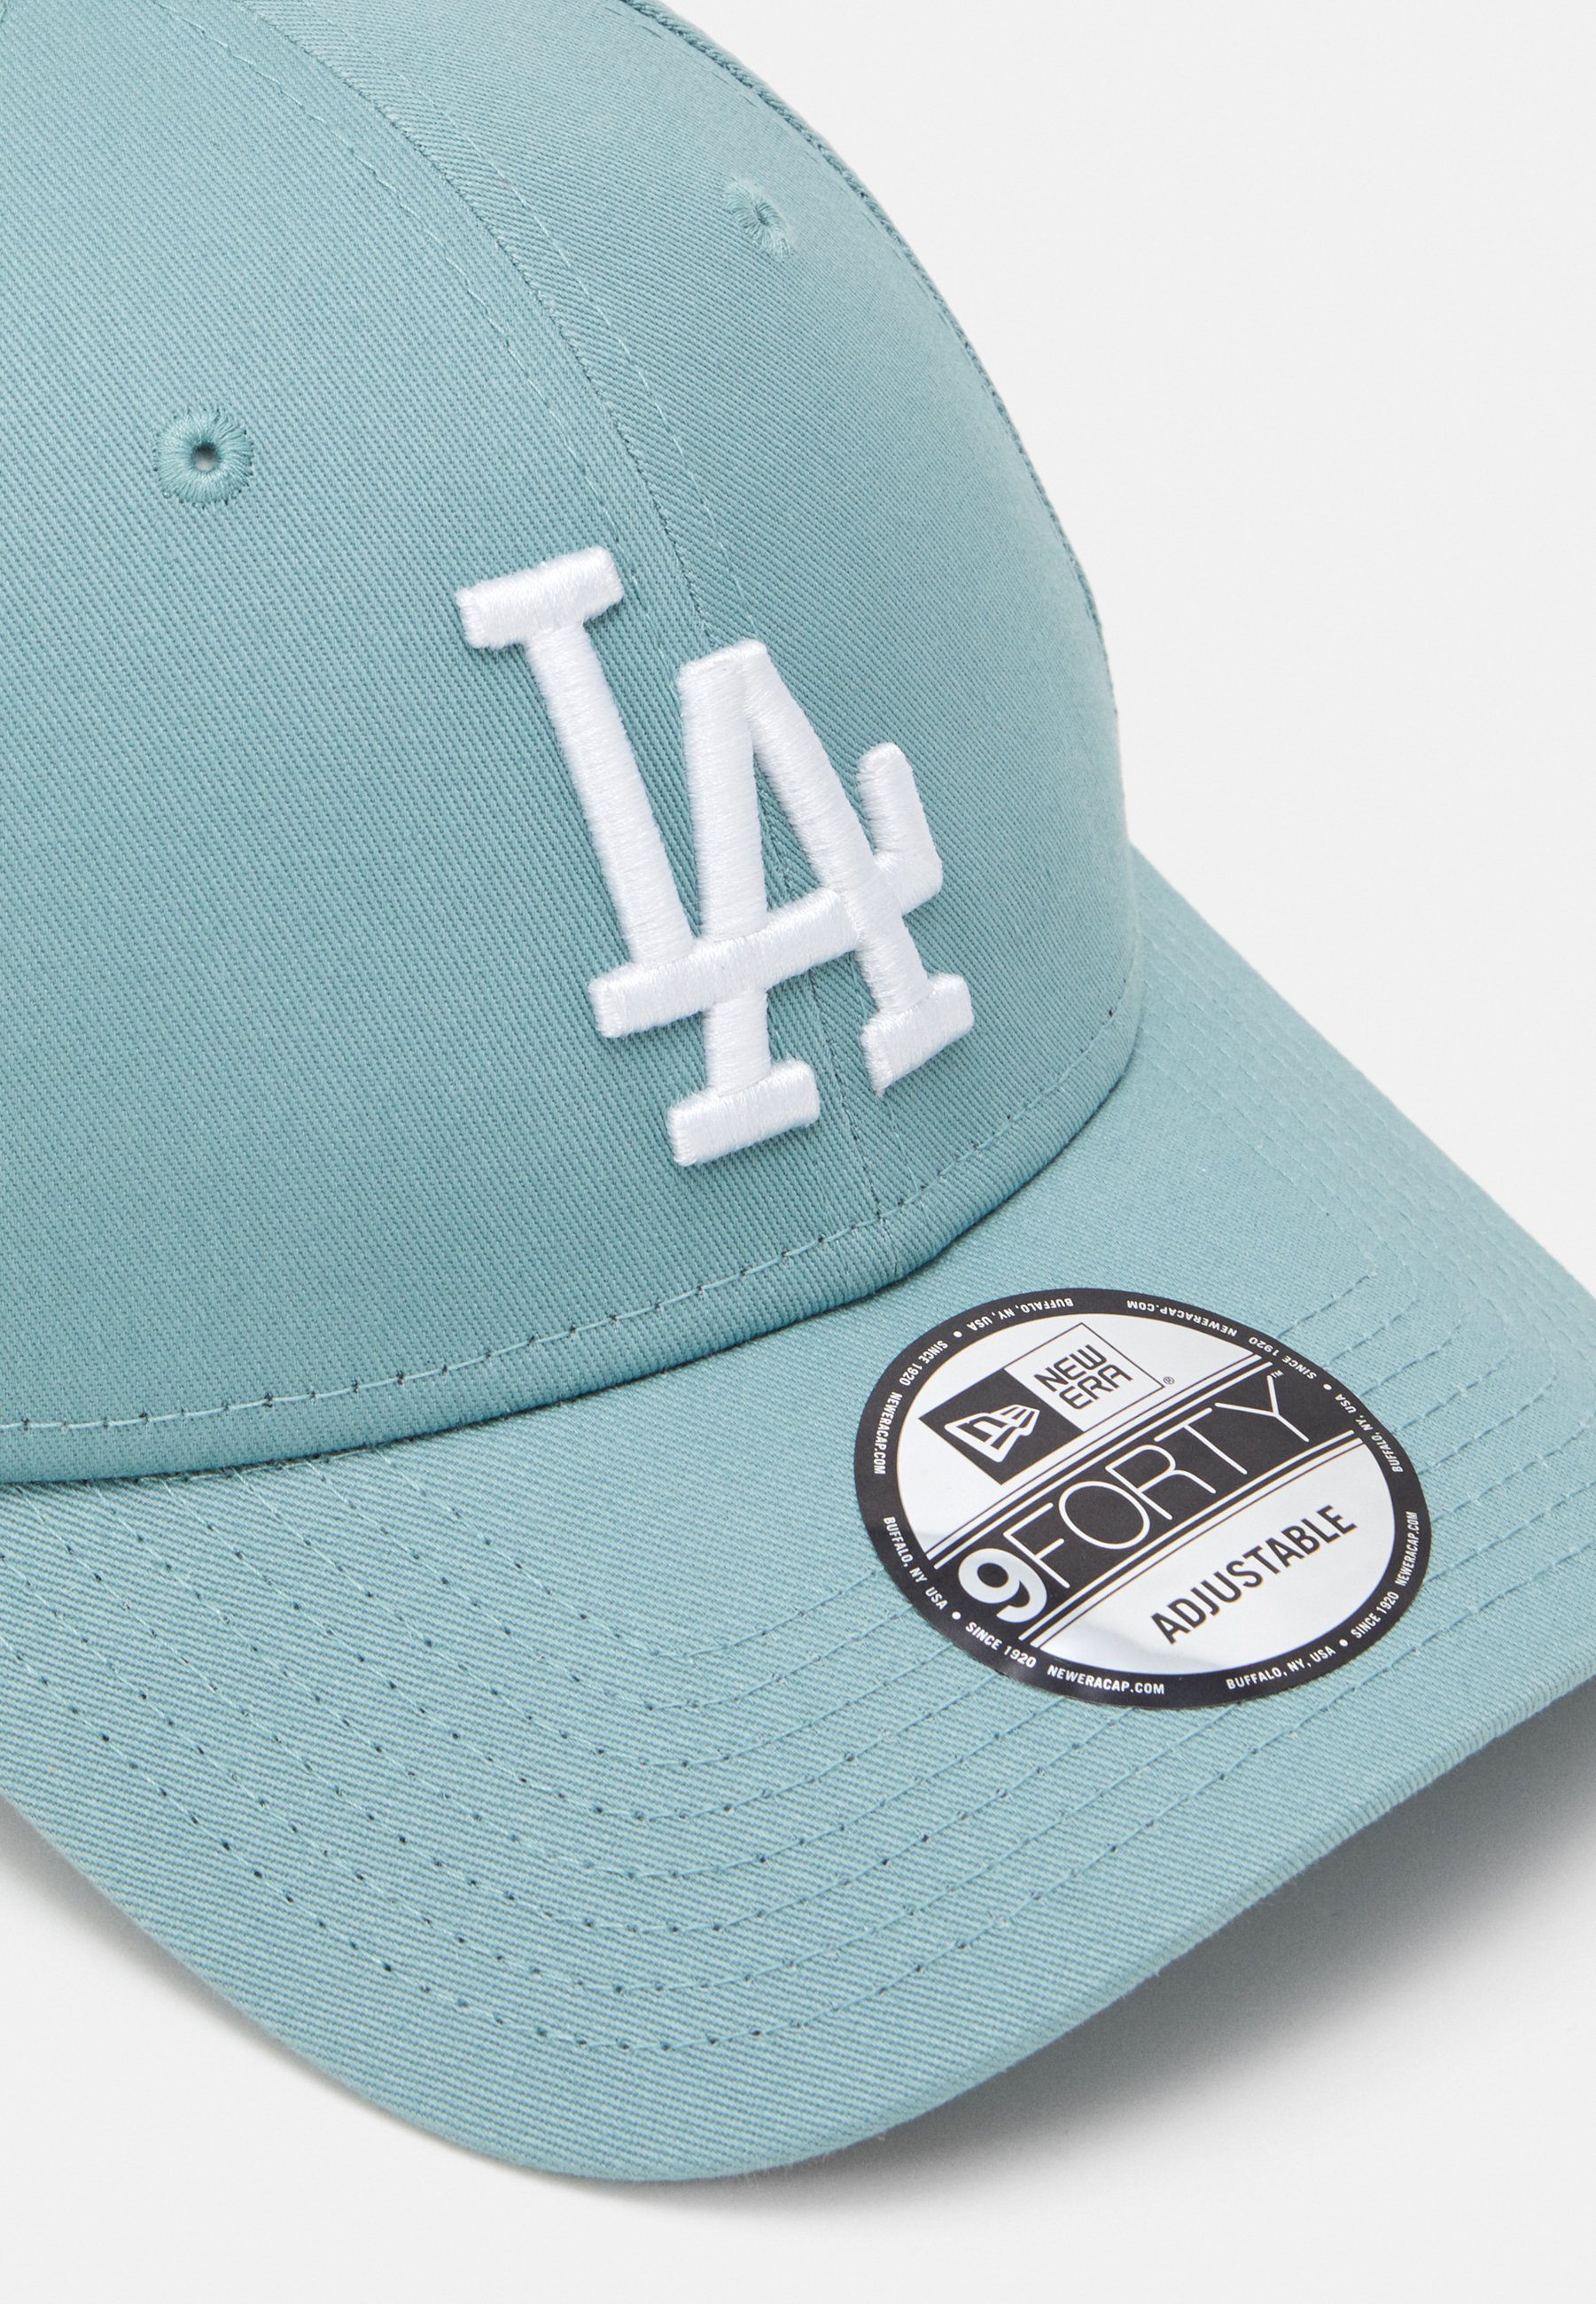 New Era LEAGUE ESSENTIAL - Cap - pastel blue/lyseblå IczlVec8Jy6shxP